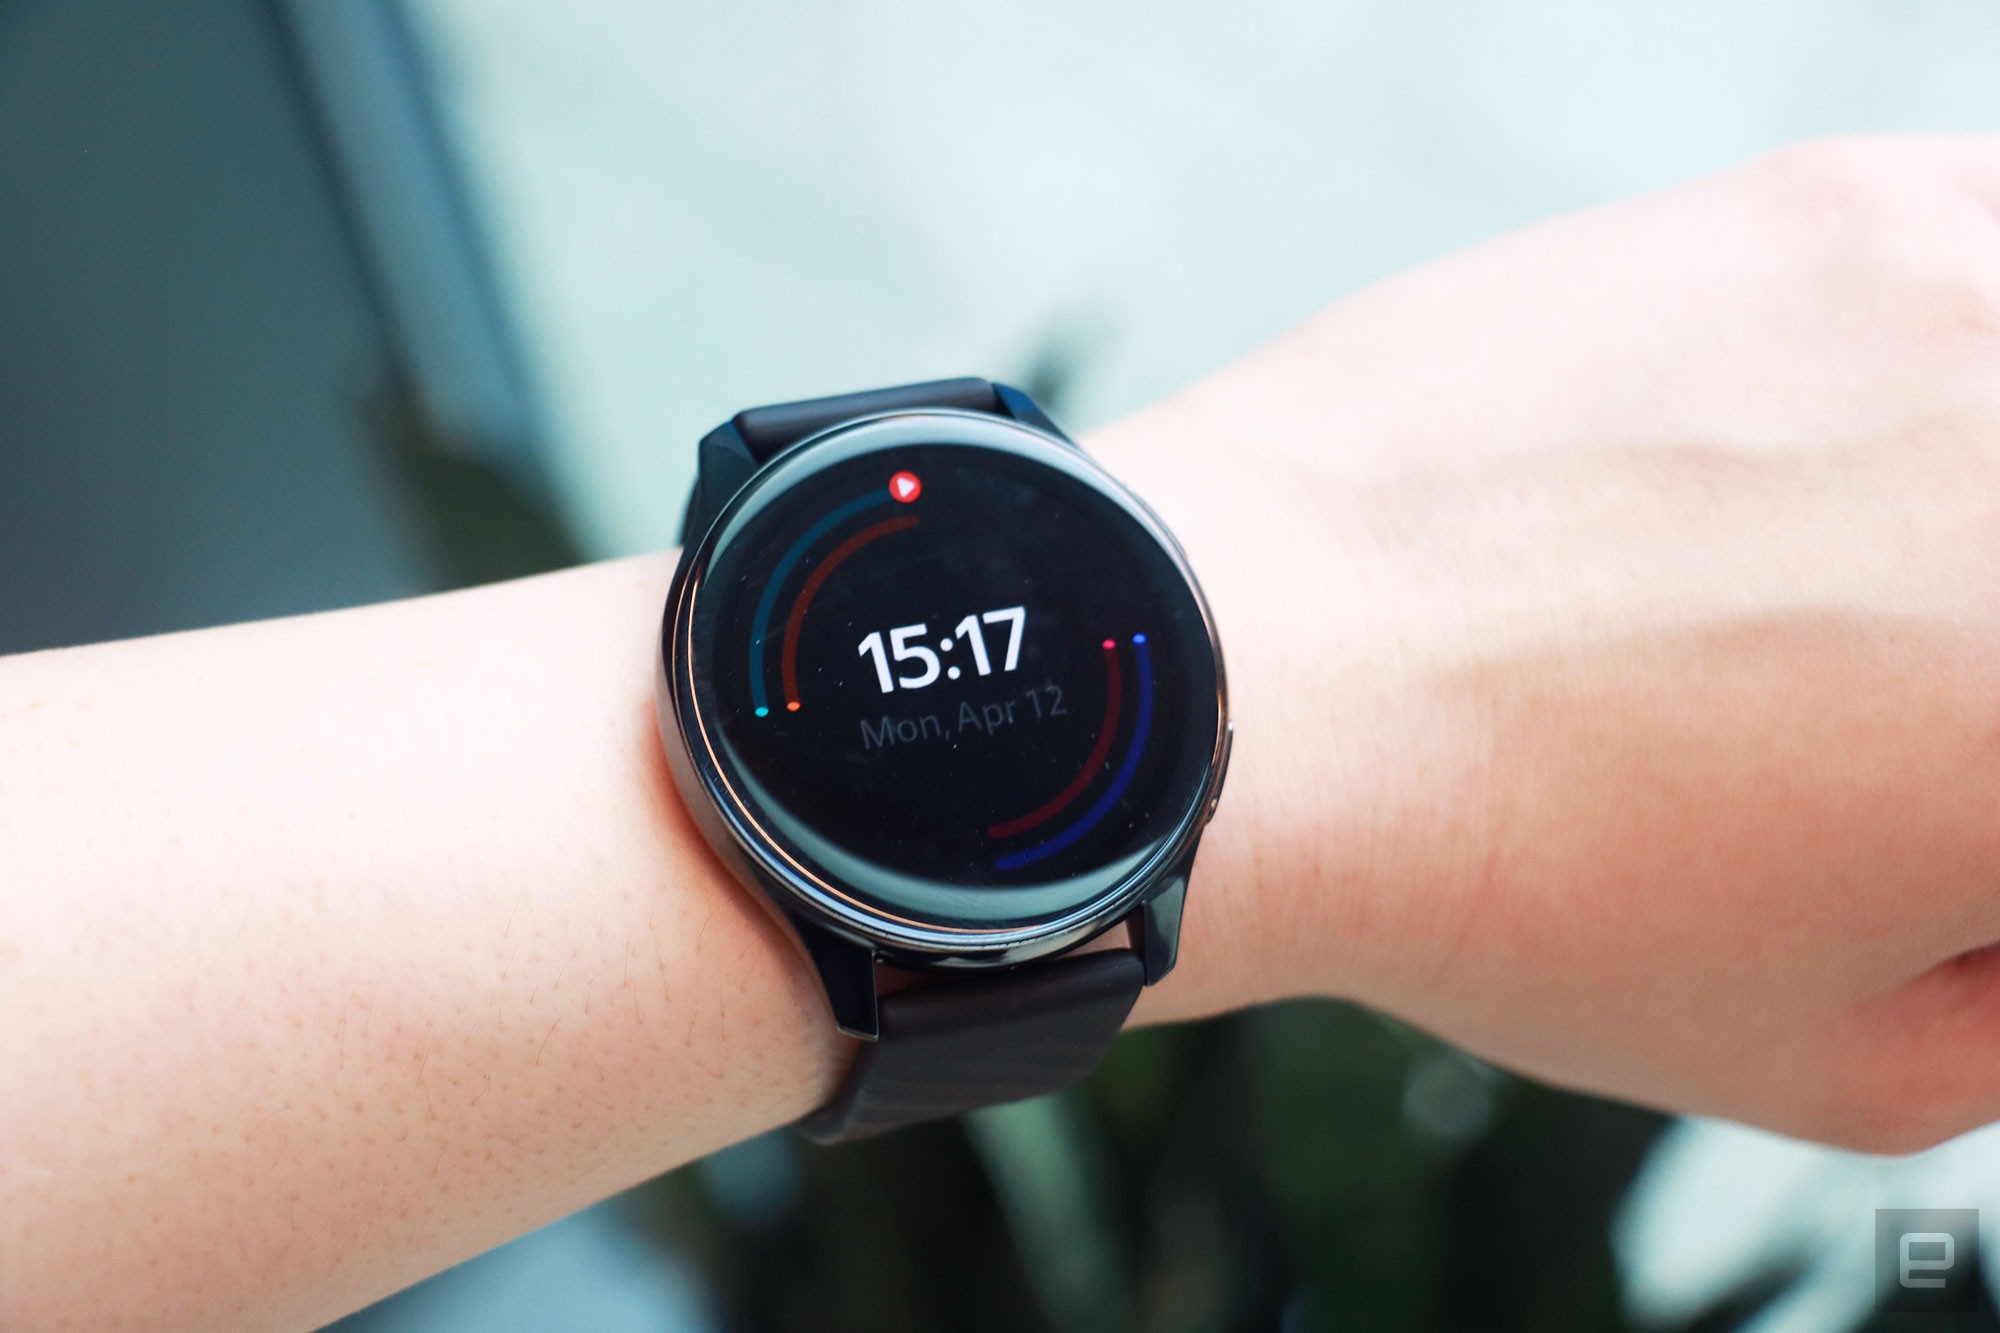 <p>OnePlus Watch review photos. OnePlus Watch on a wrist with display showing the time and outlines of rings in different colors around the face.</p>